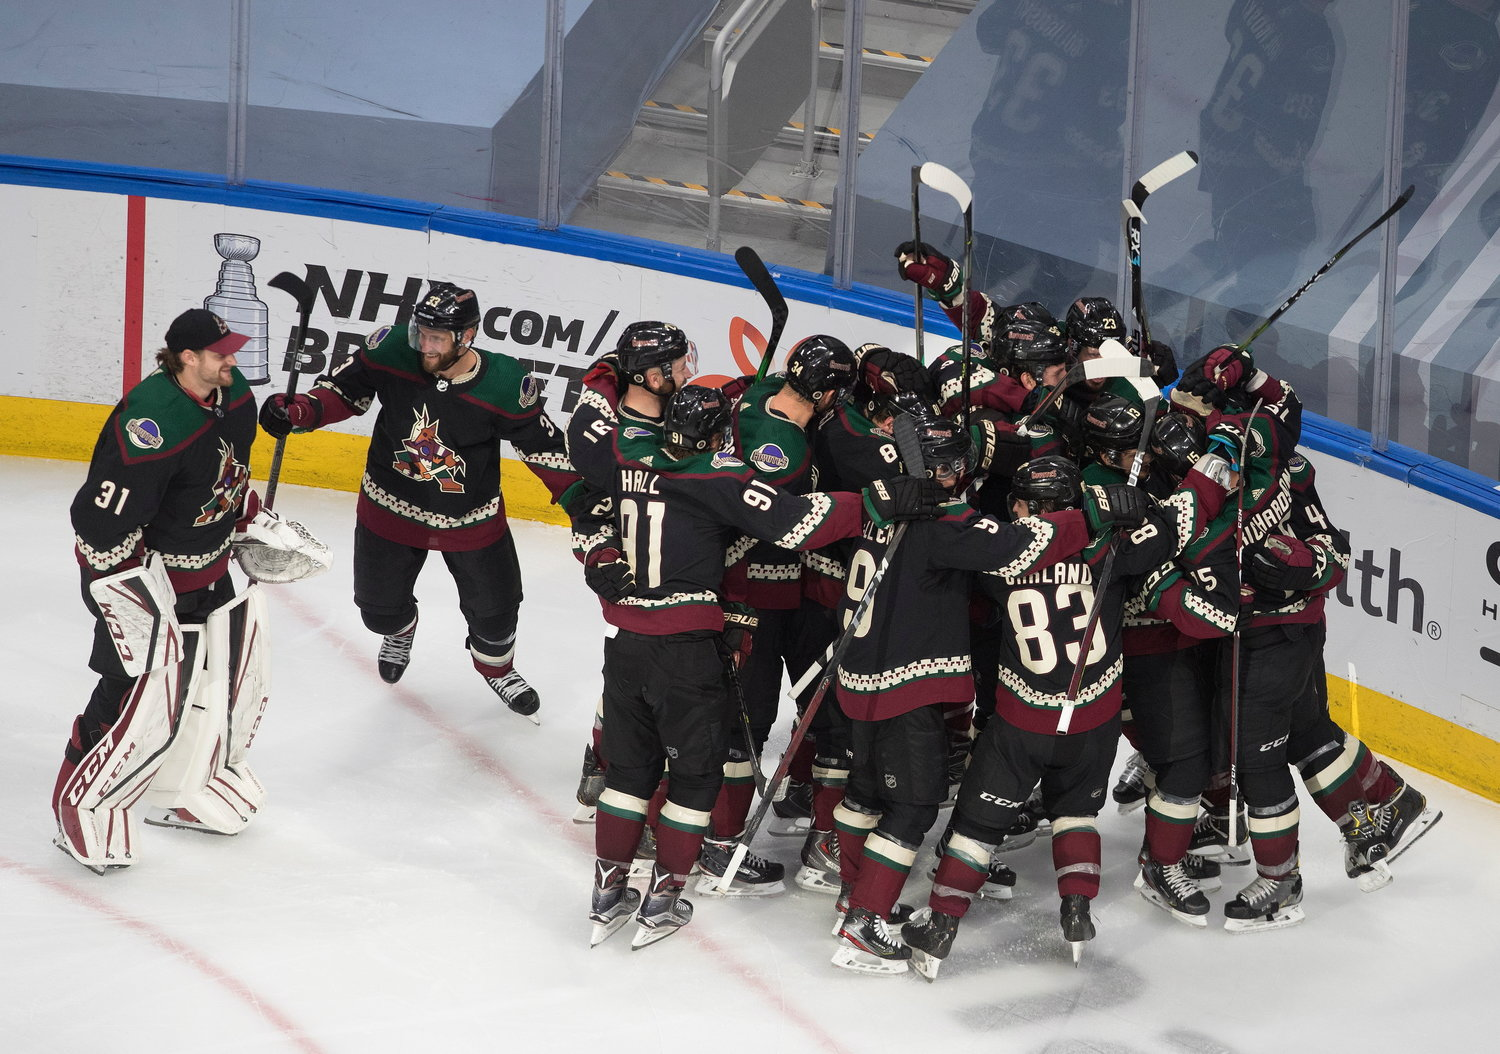 Arizona Coyotes celebrate their win over the Nashville Predators following overtime of an NHL hockey playoff game Friday, Aug. 7, 2020, in Edmonton, Alberta. (Jason Franson/Canadian Press via AP)